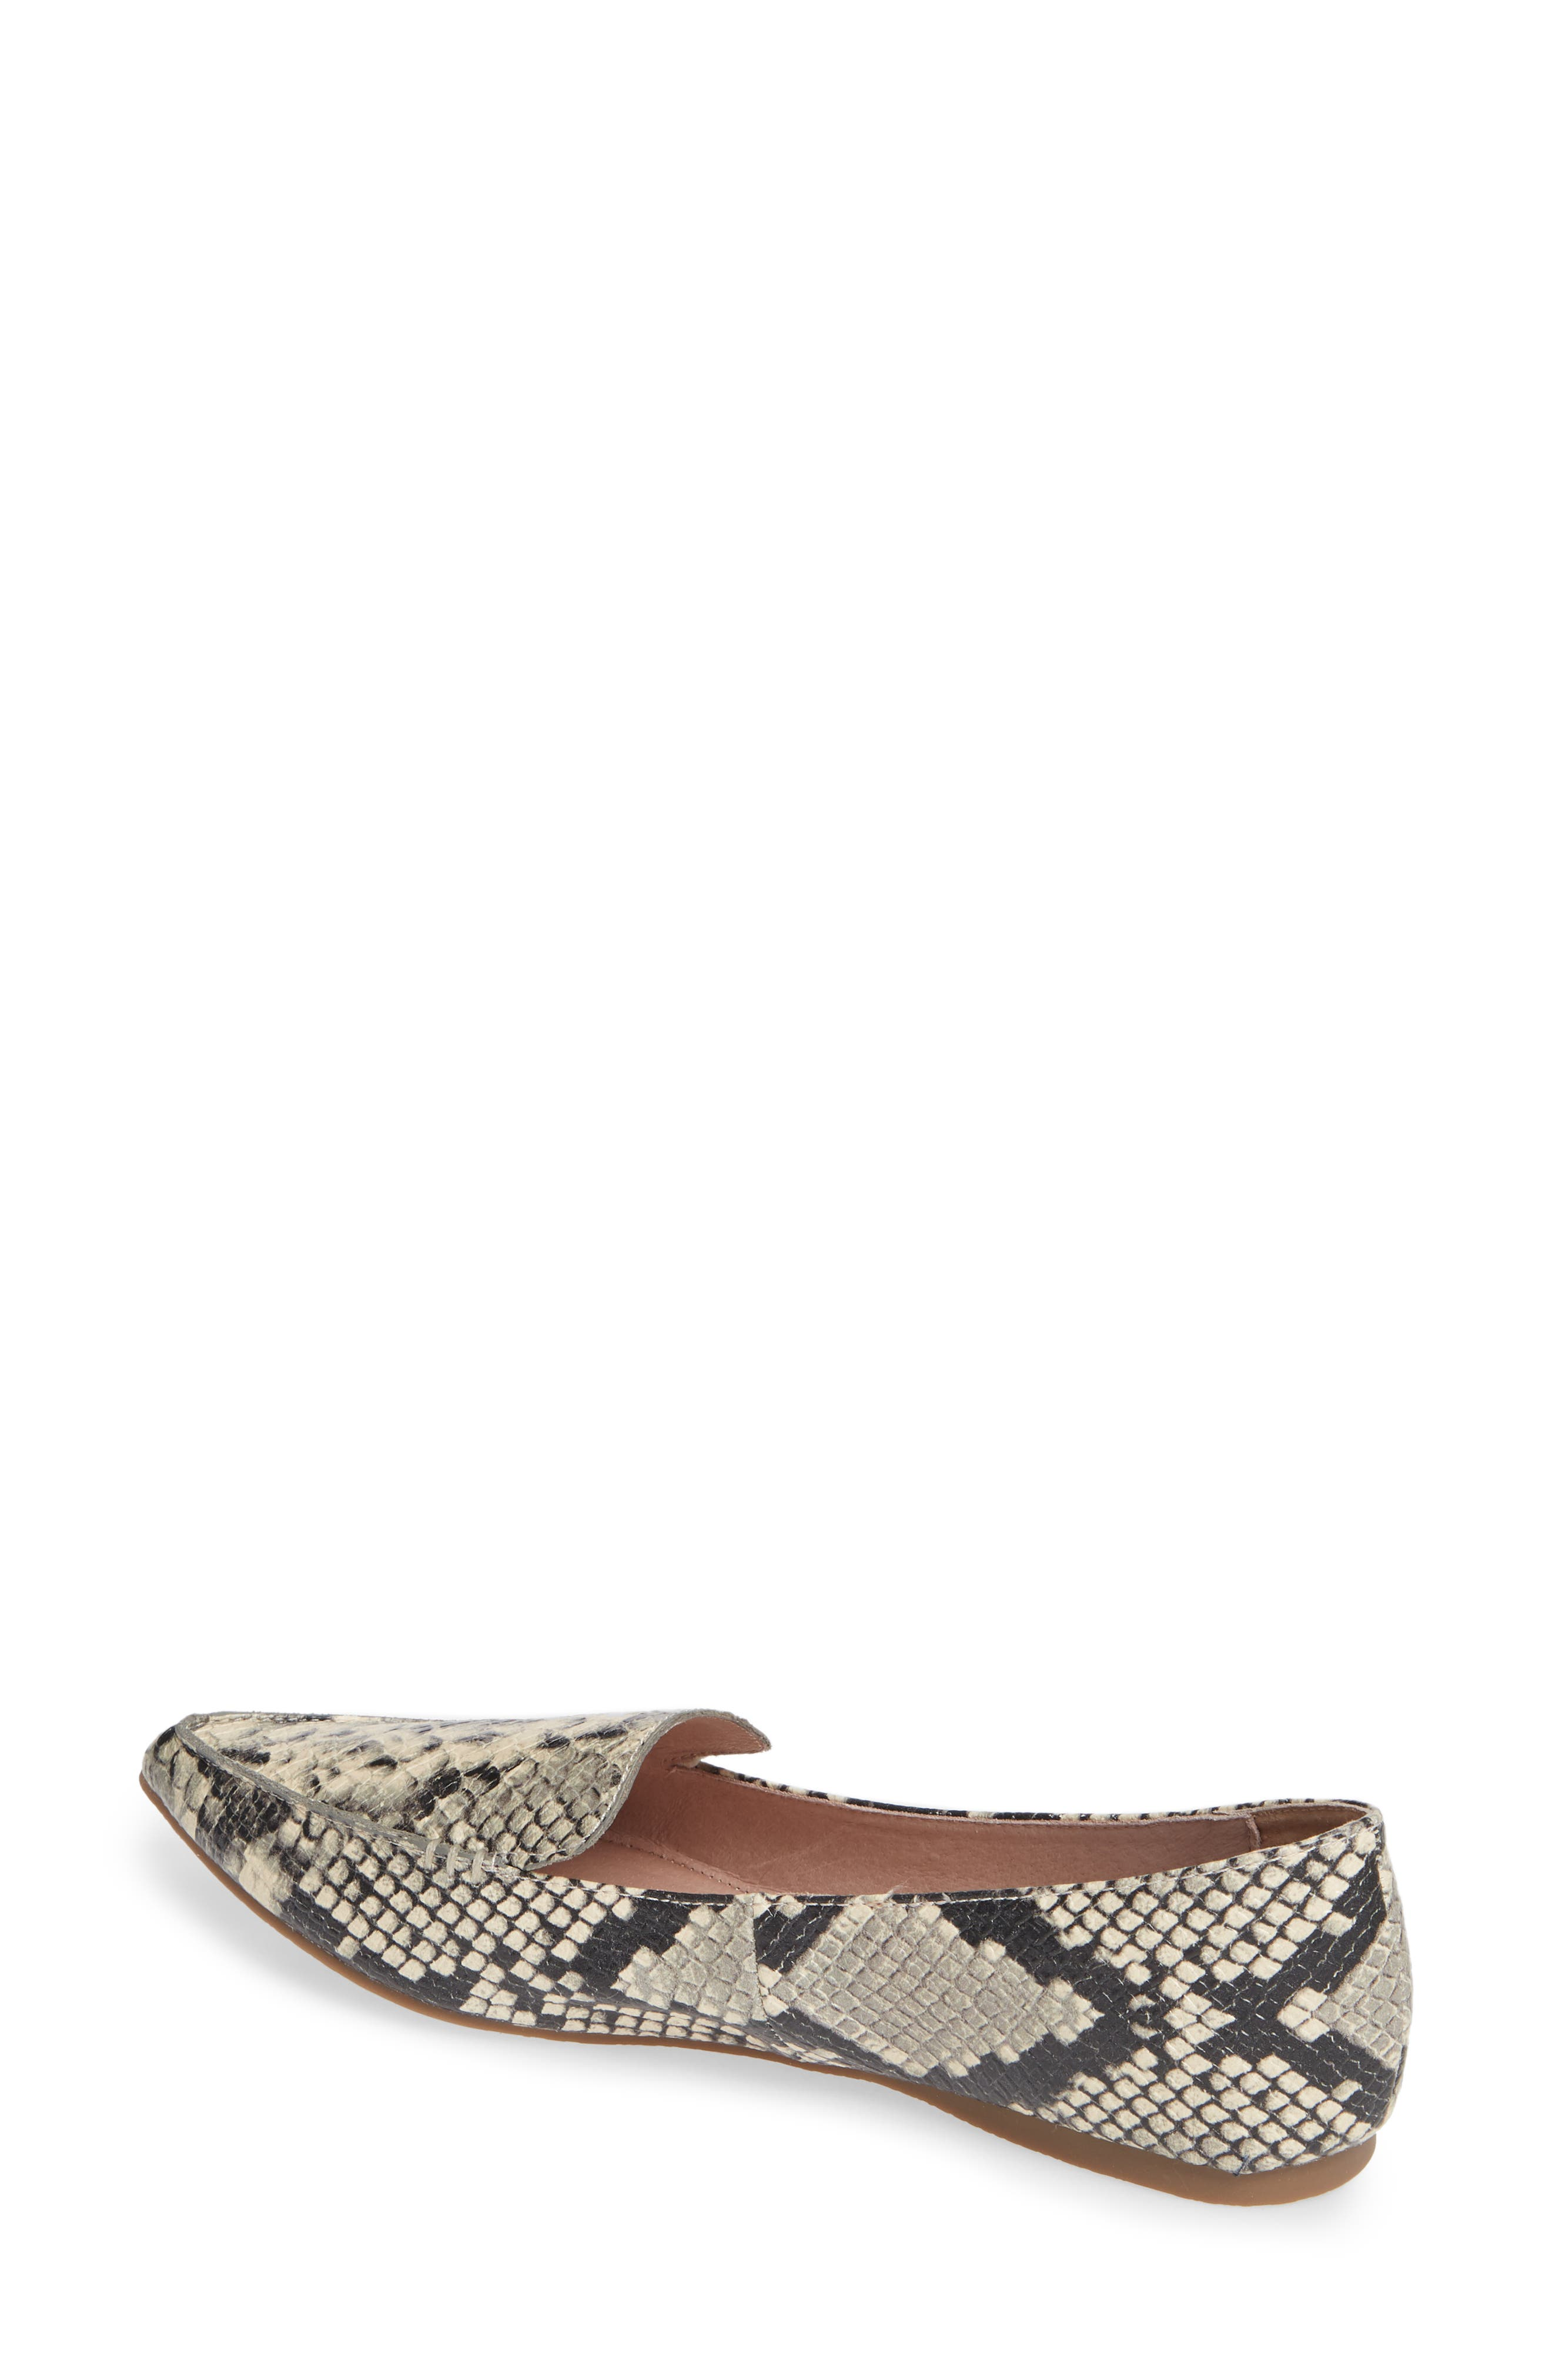 Feather Loafer Flat,                             Alternate thumbnail 2, color,                             SNAKE PRINT LEATHER